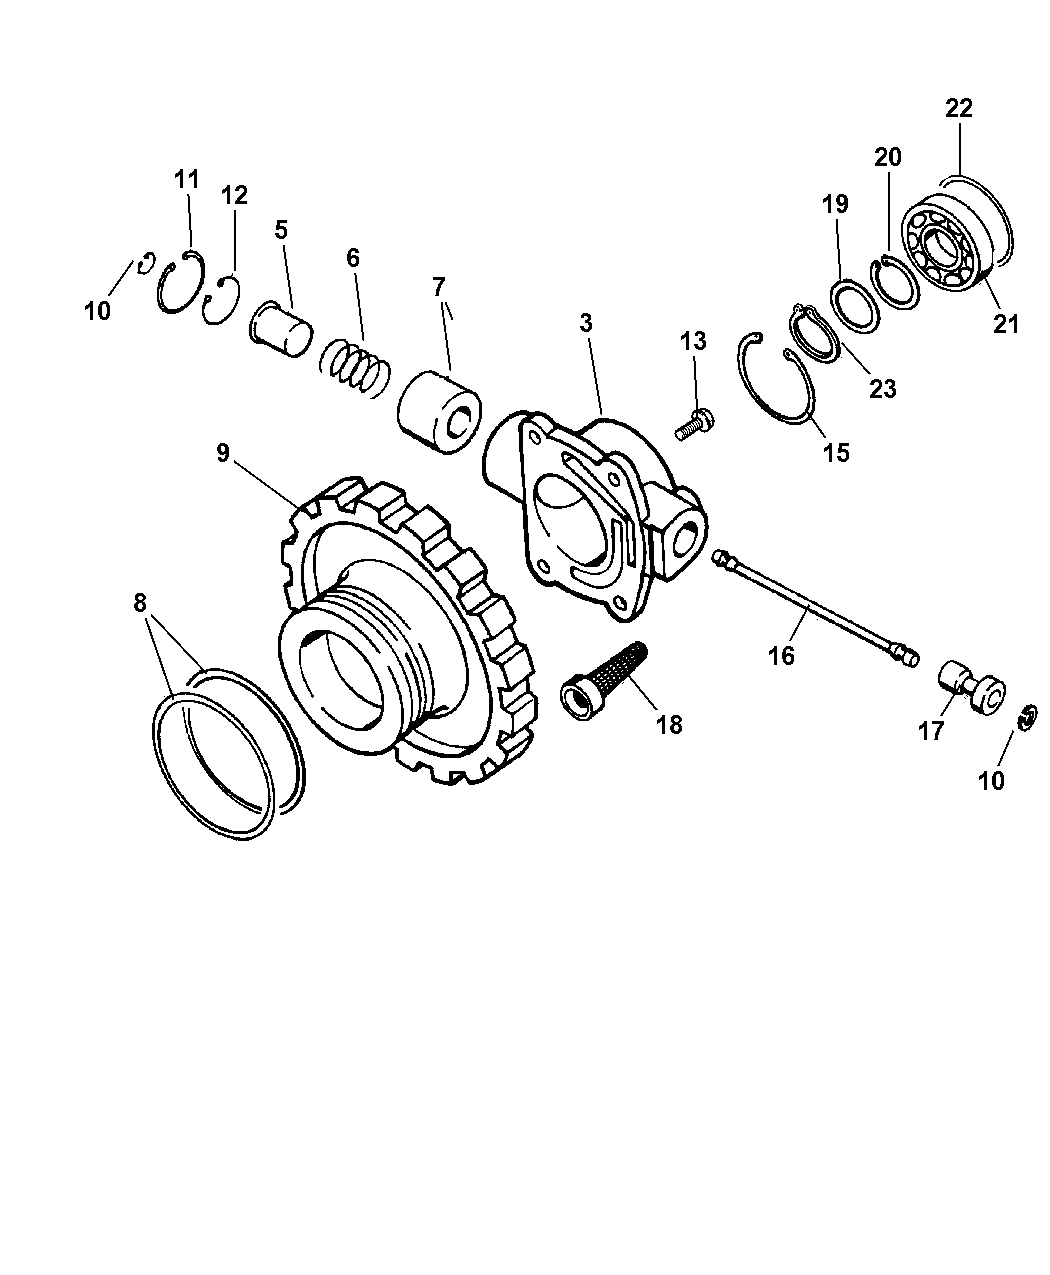 1997 jeep wrangler governor - thumbnail 1  2  automatic transmission